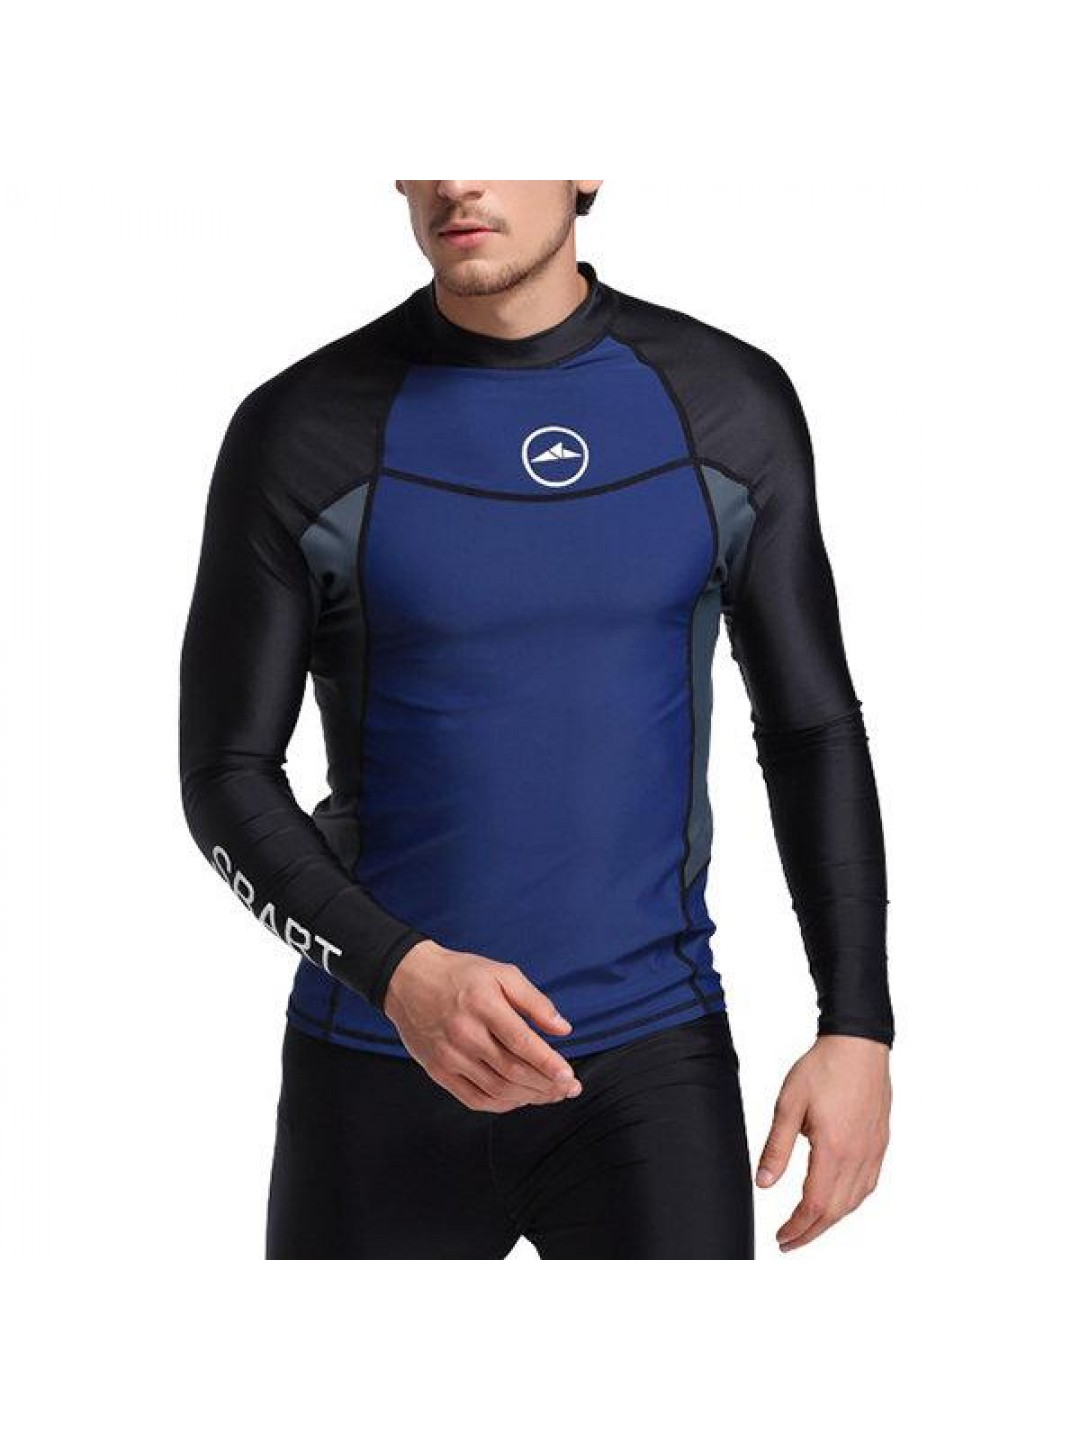 Sea Sunscreen Swimming Hot Spring Diving Surf Snorkelling Tops